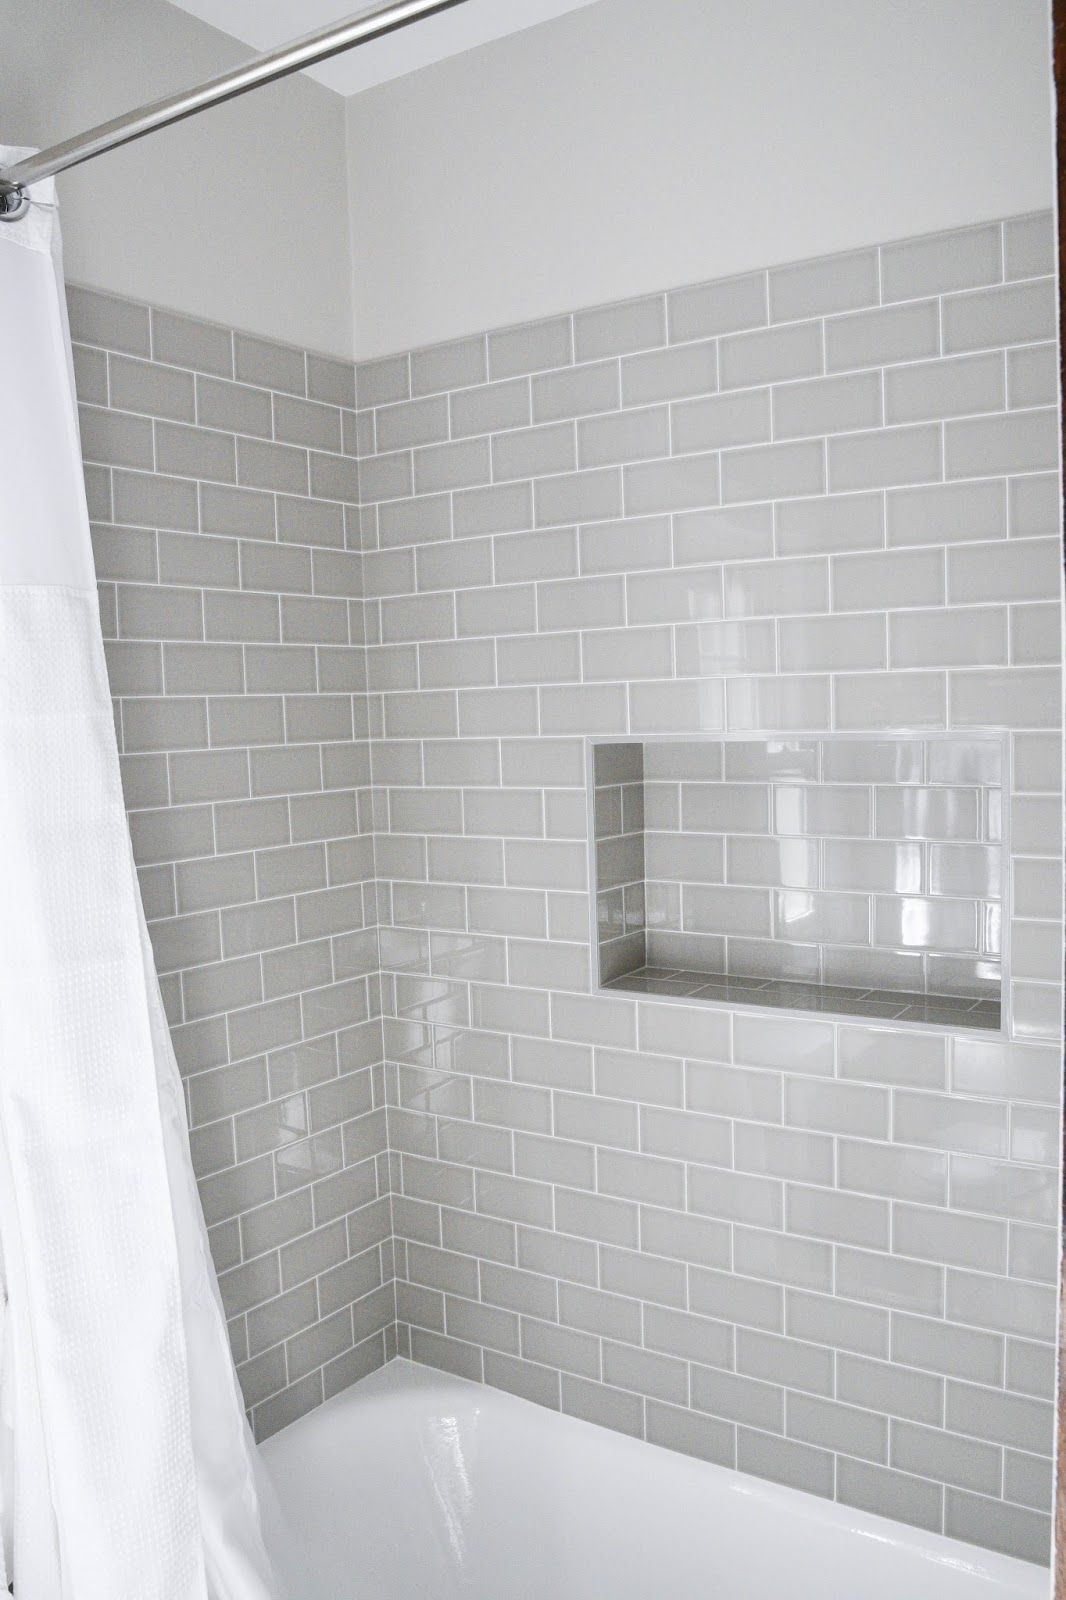 Modern meets traditional styled bathroom subway tile for Modern subway tile bathroom designs